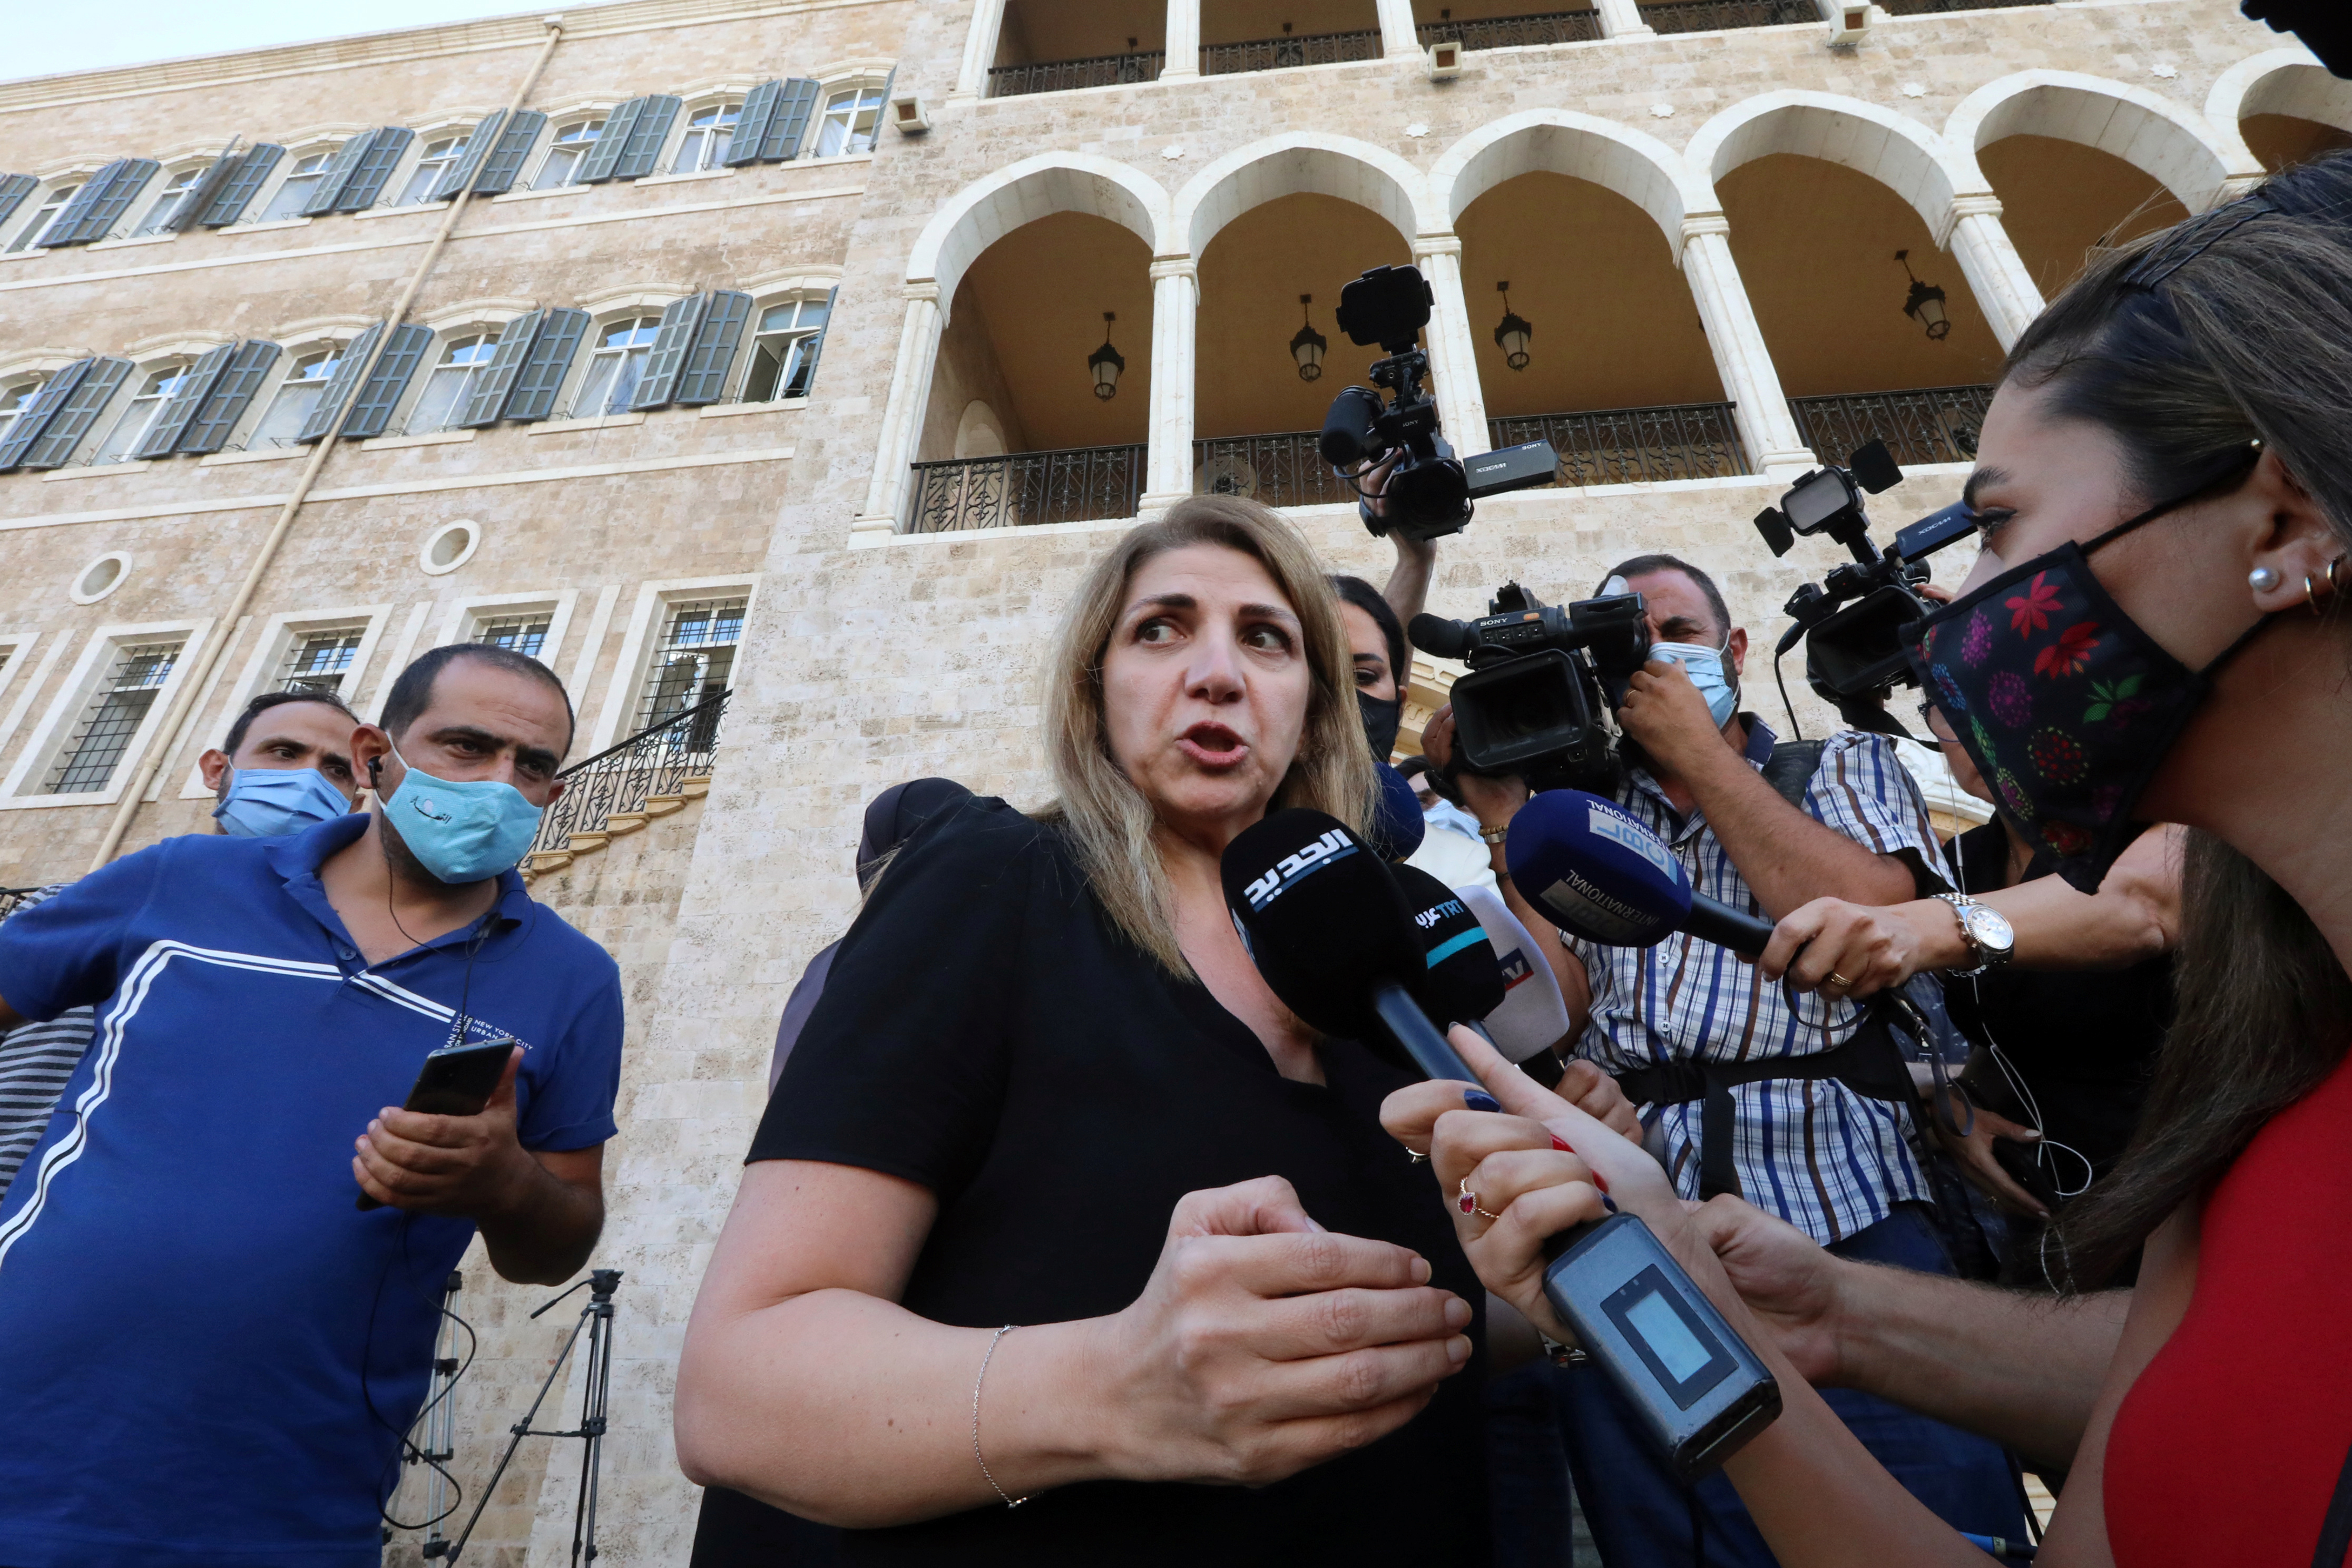 A judicial revolt in Lebanon ... and the Minister of Justice is on the move